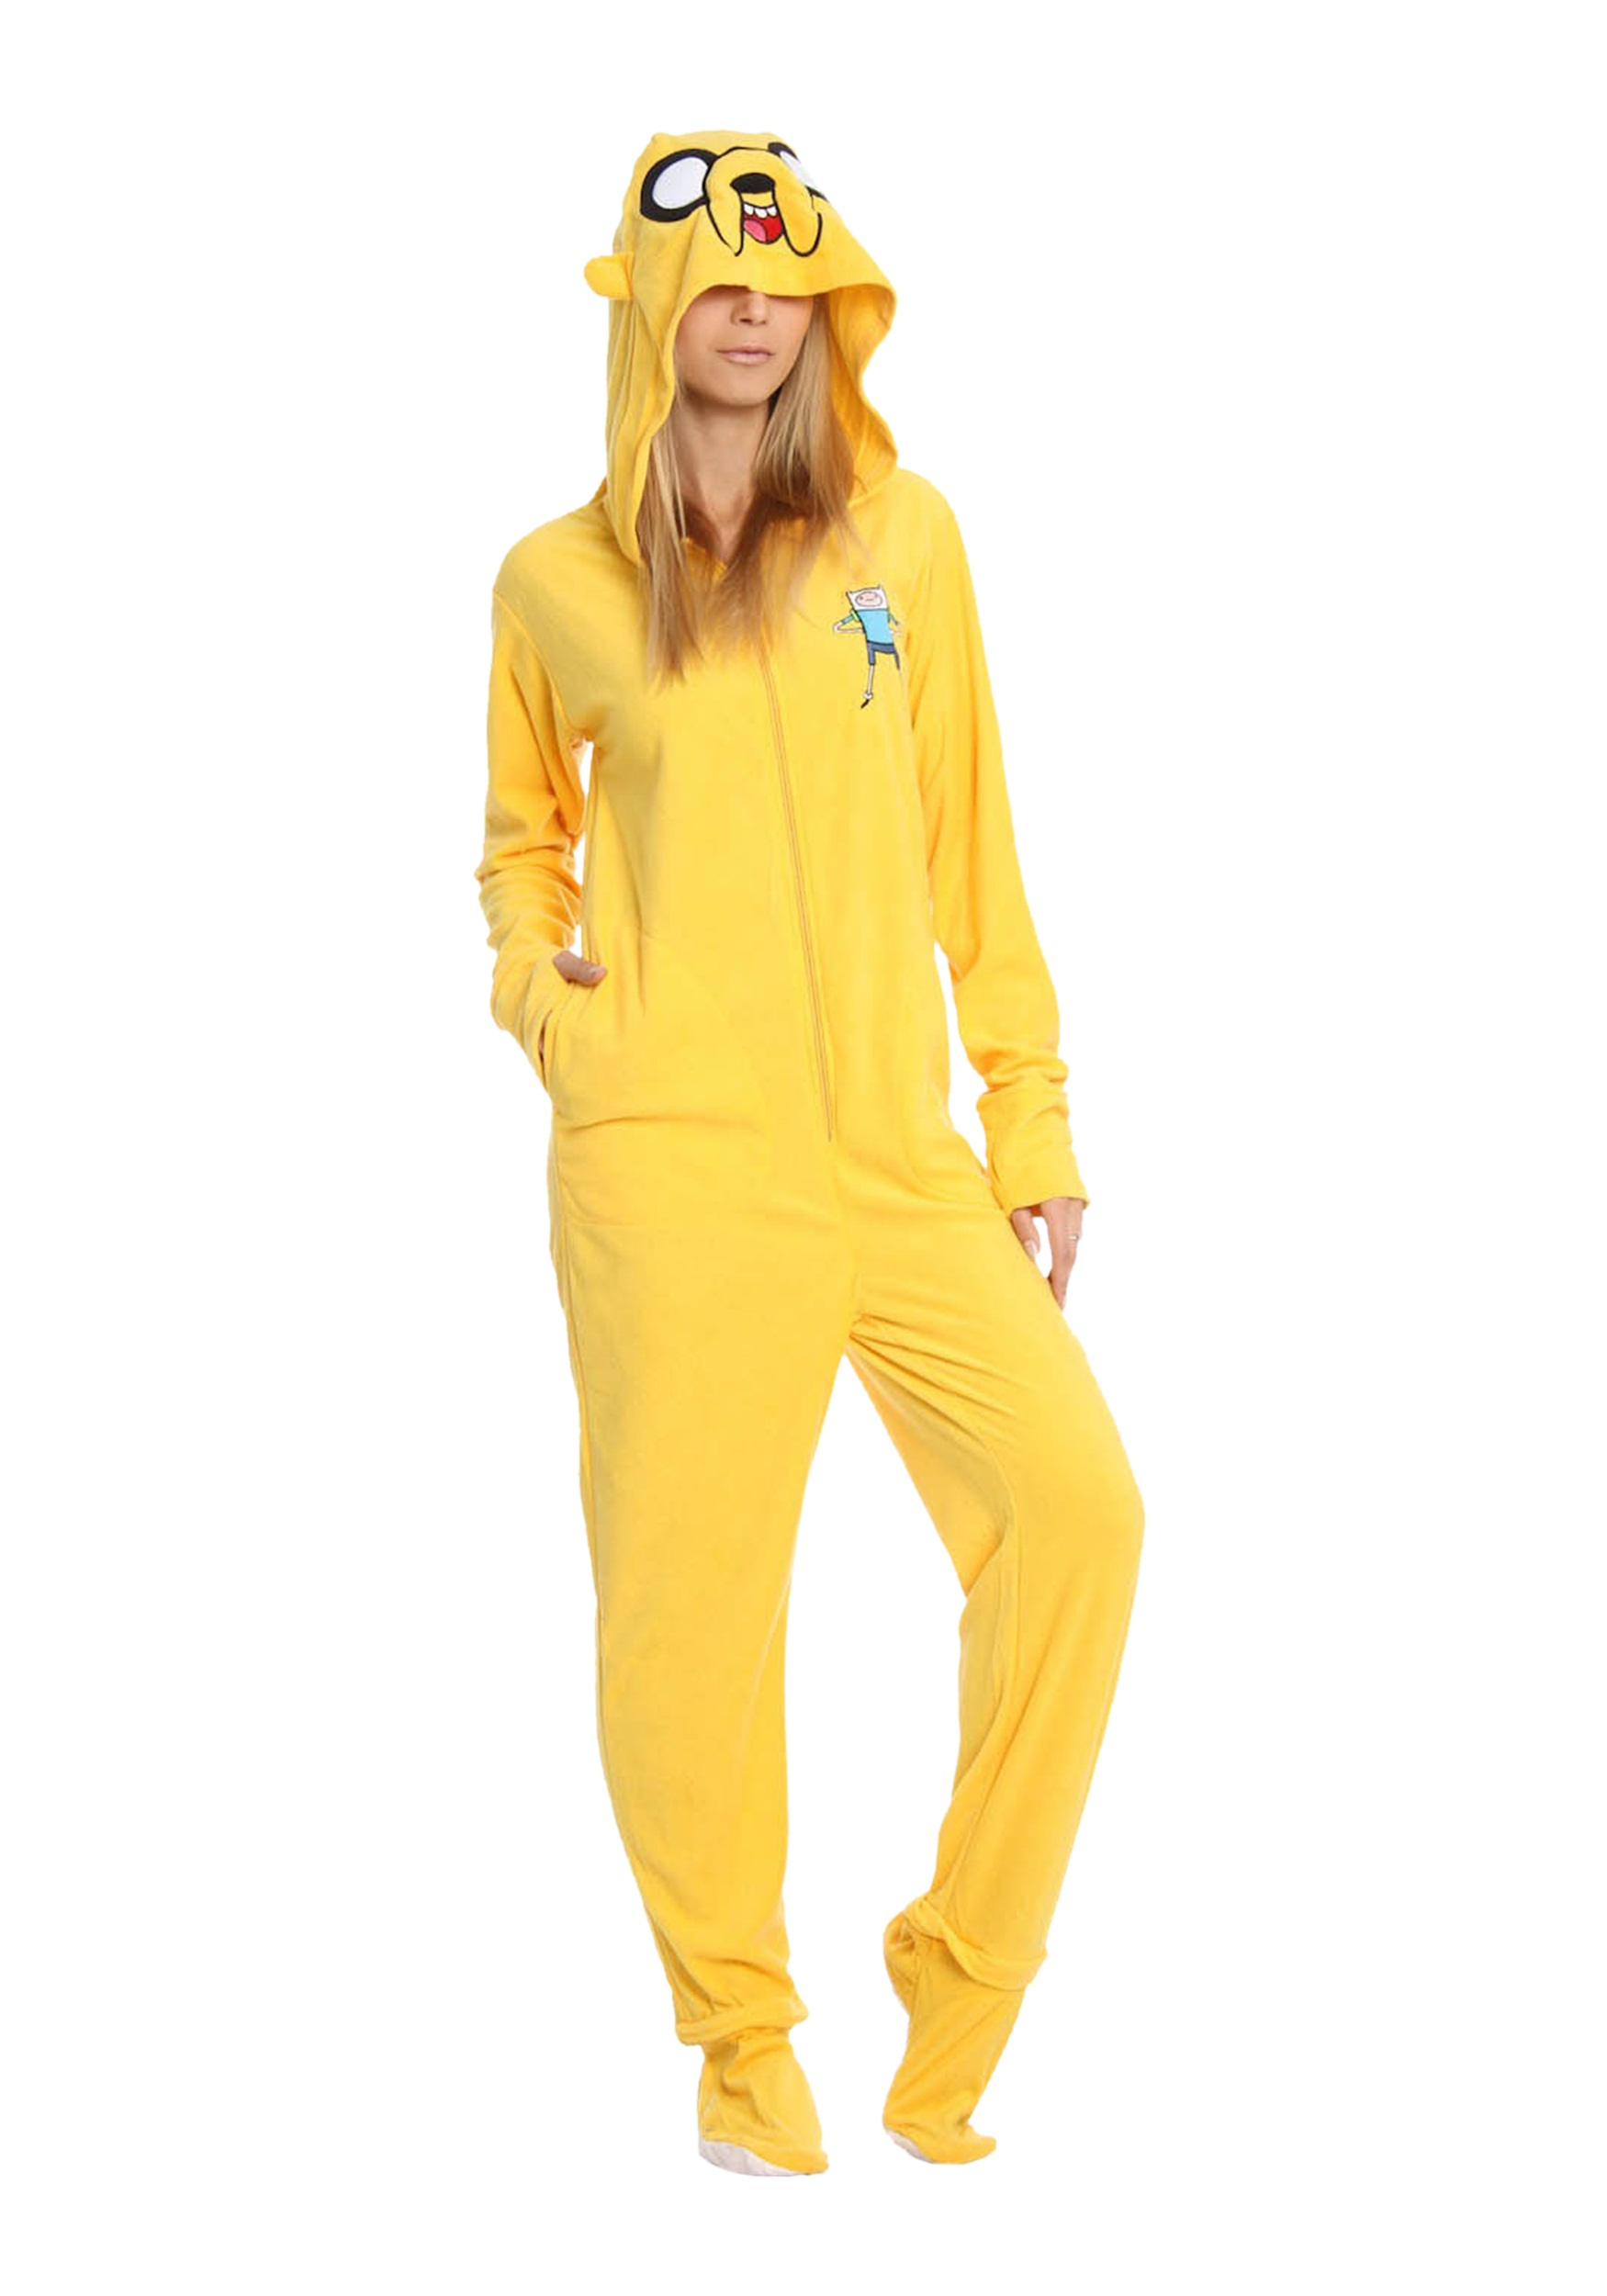 e332f09877e2 Jake The Dog Costumes   Jake The Dog CostumeDisney U0026 Cartoon ...